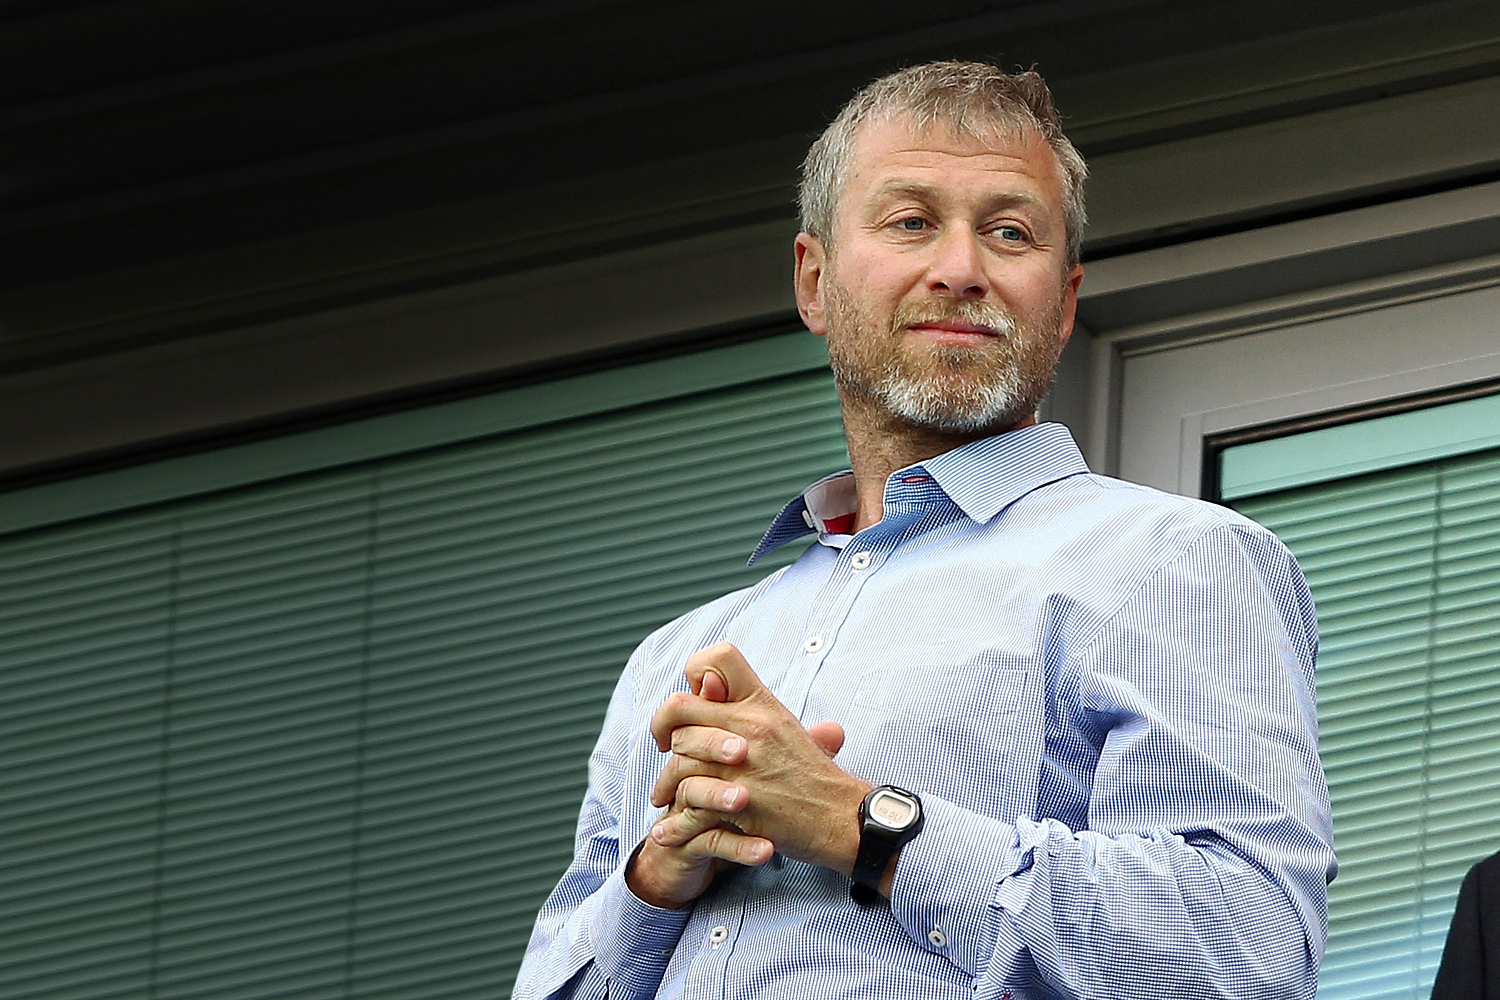 Russian billionaire Abramovich gets Israeli citizenship